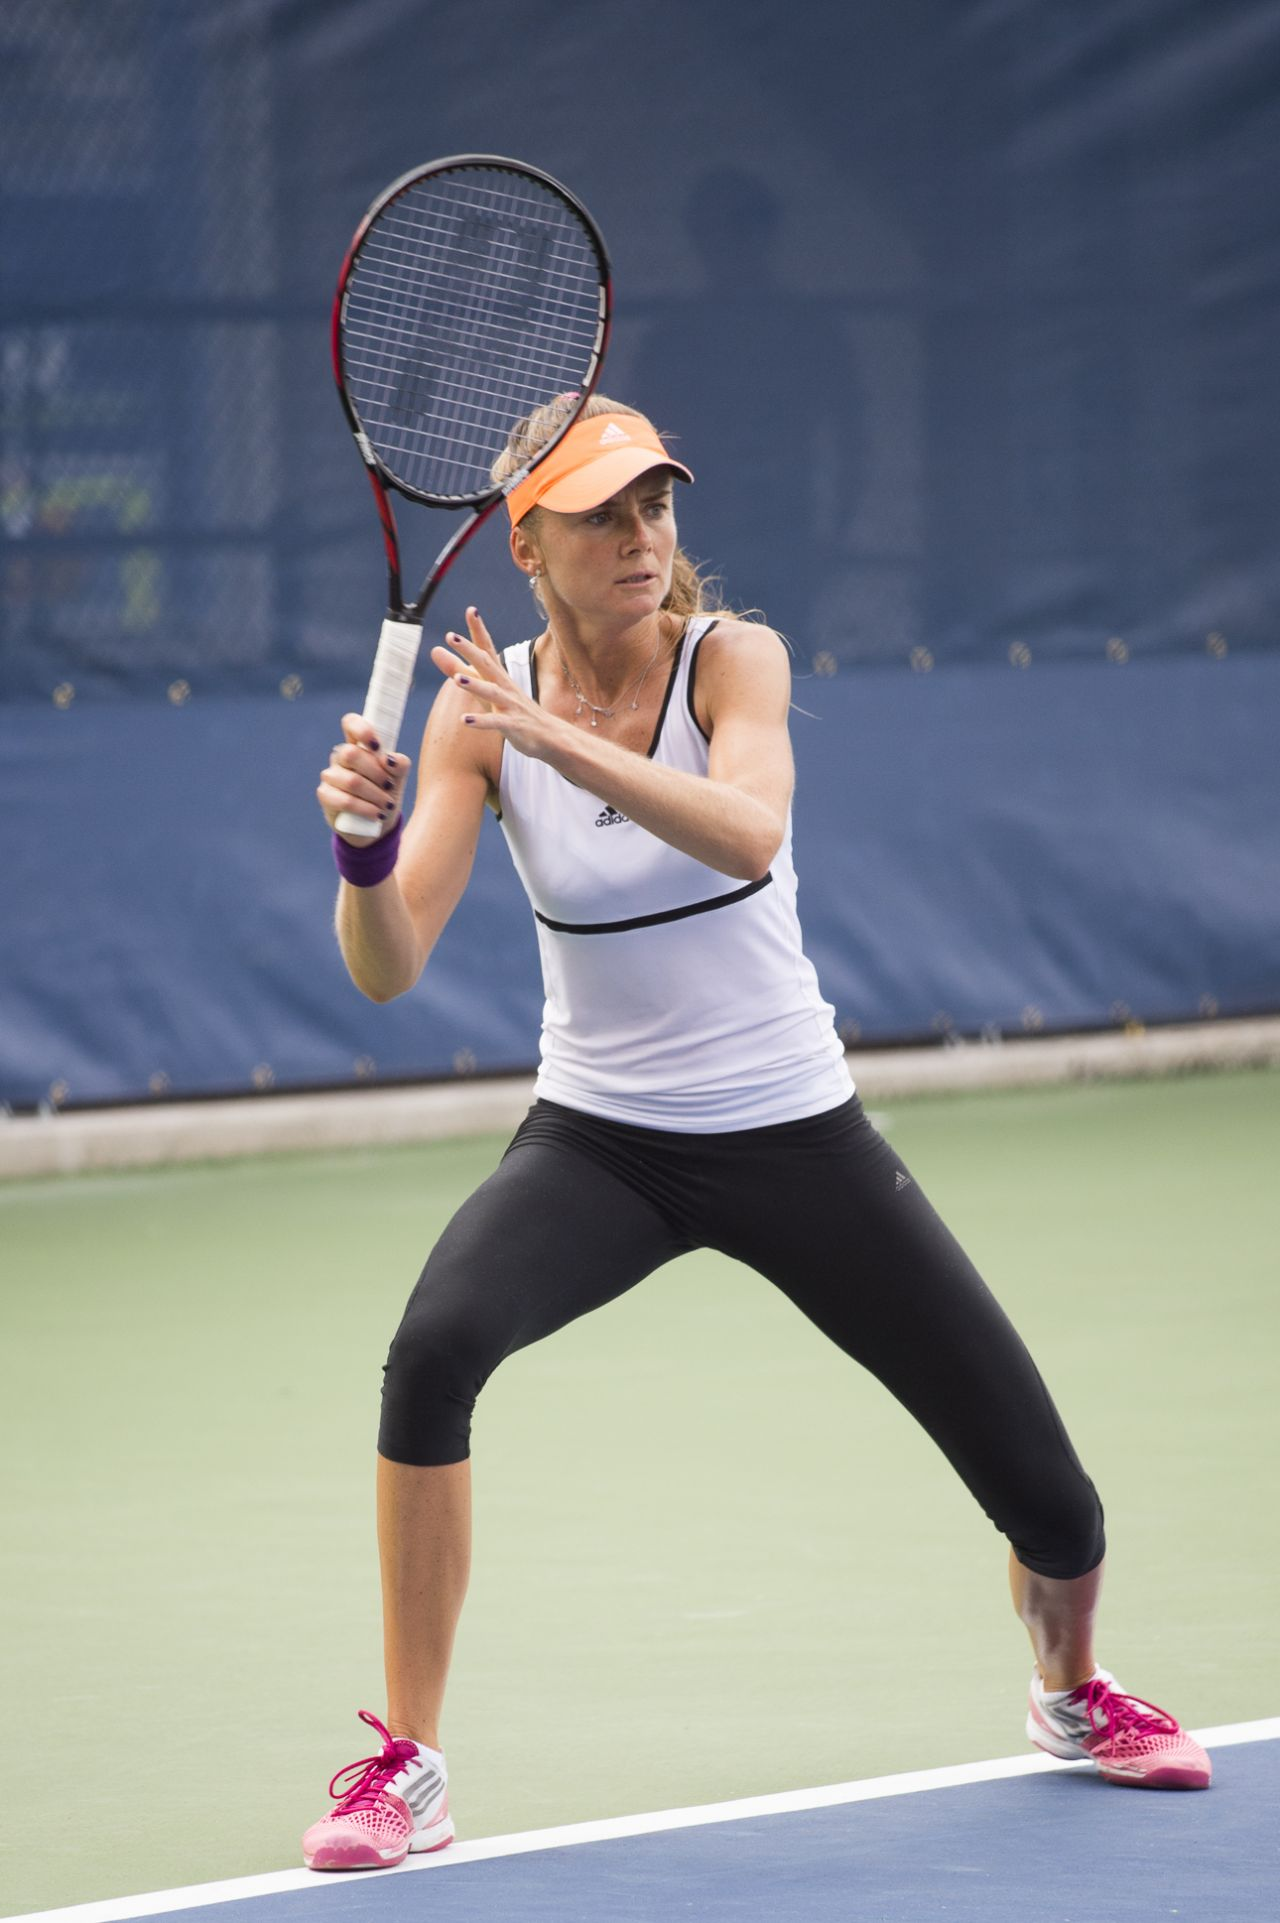 Daniela Hantuchova Practice At The 2014 Us Open In New